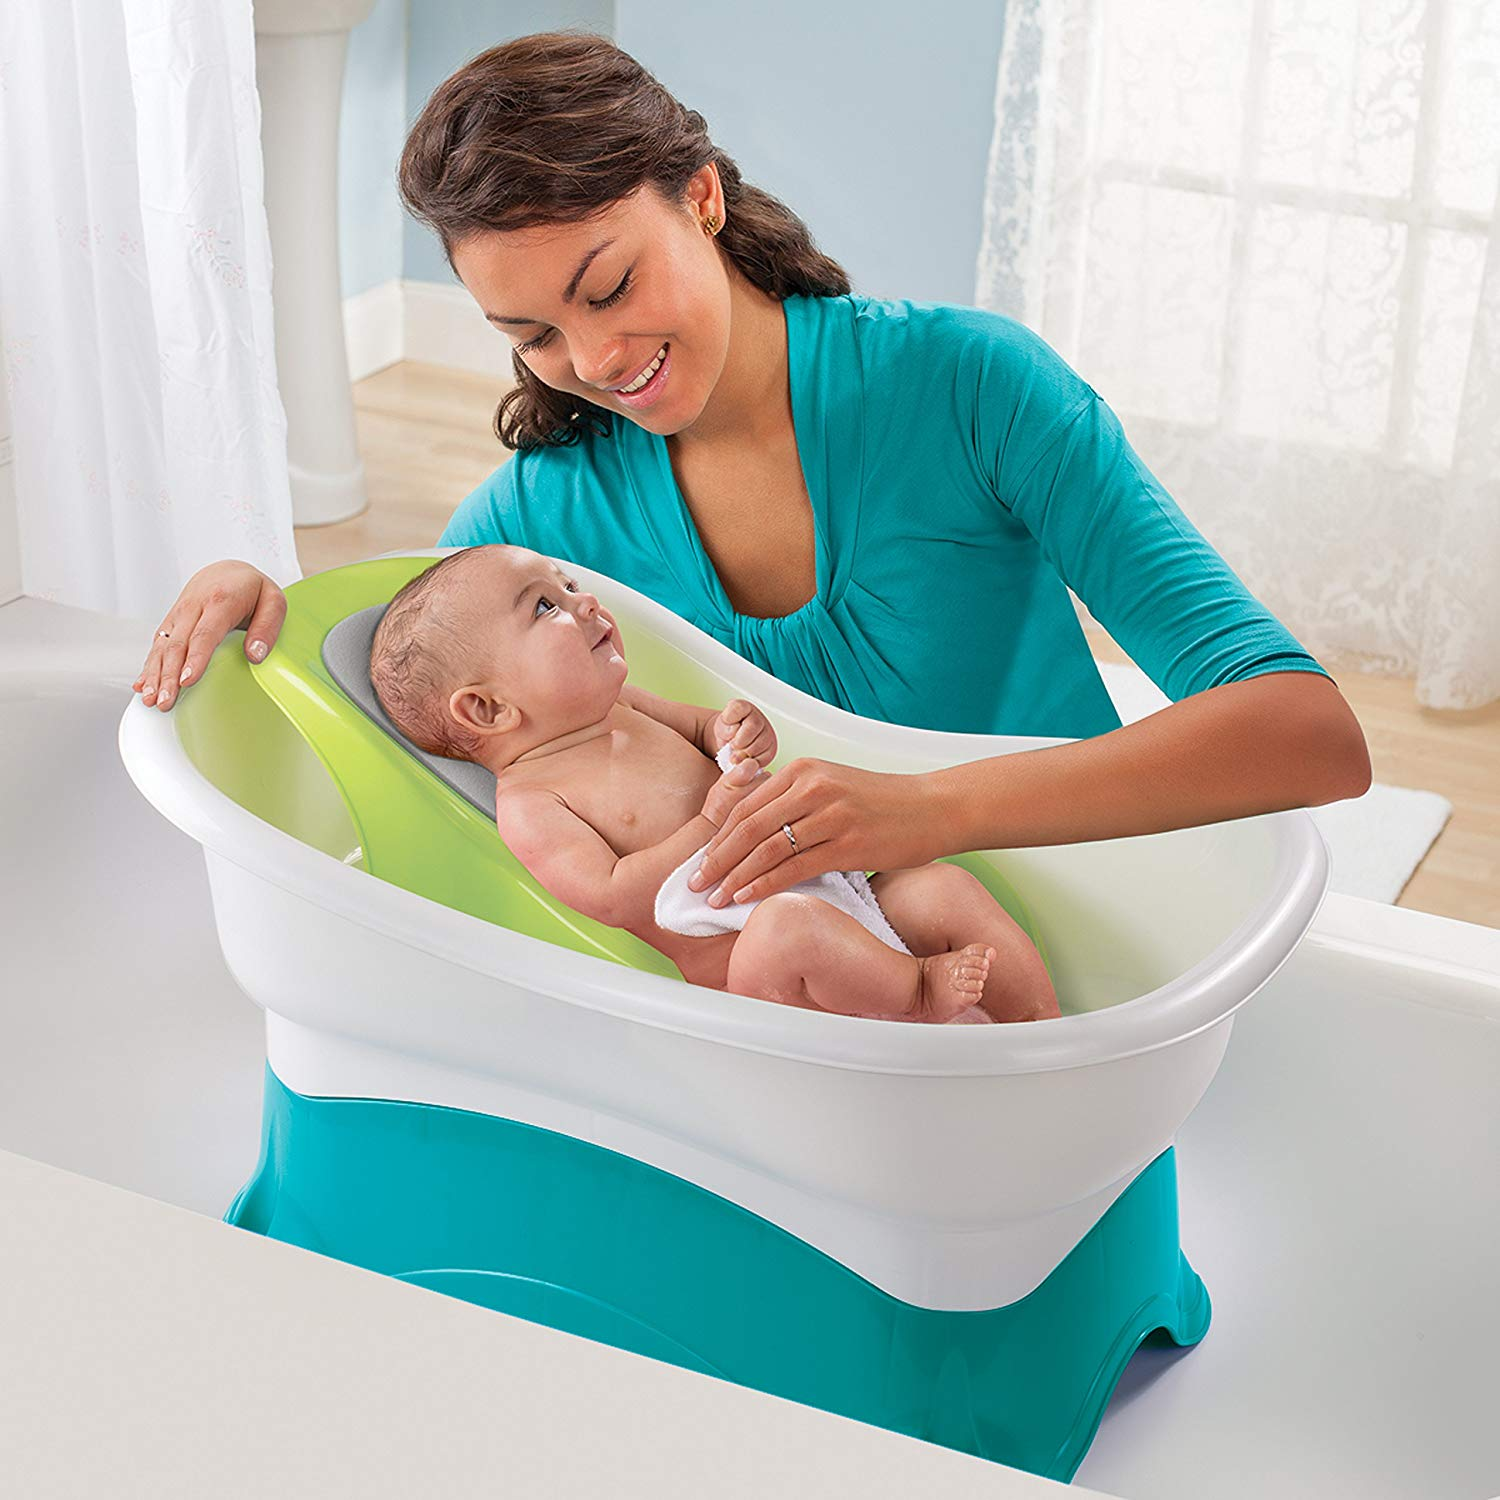 Newborn Infant Bath How To Organize Your Home For A New Baby Just Simply Mom